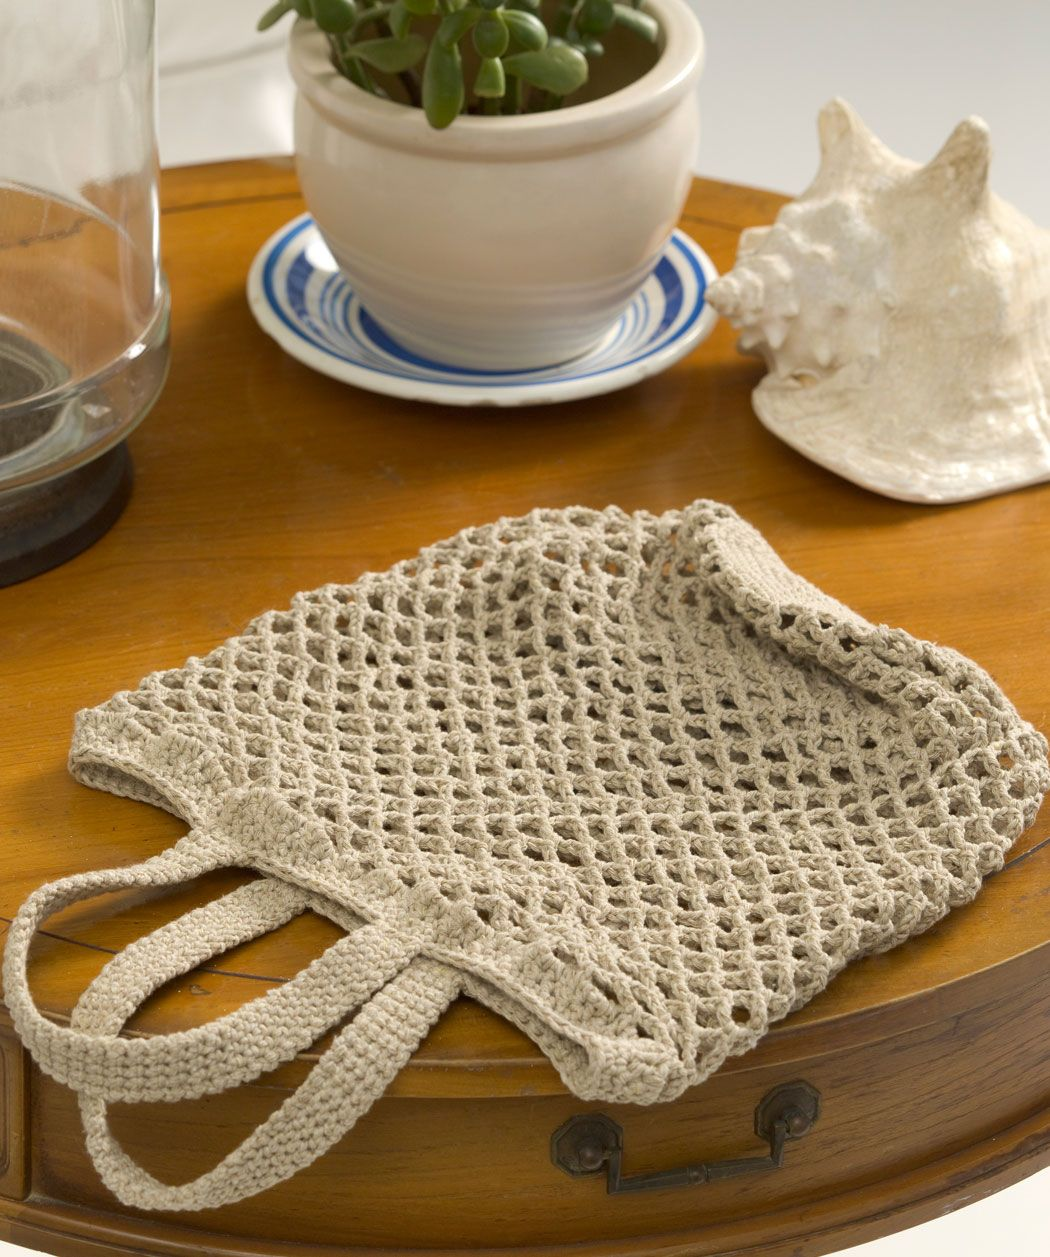 Crochet Save the Earth Bag